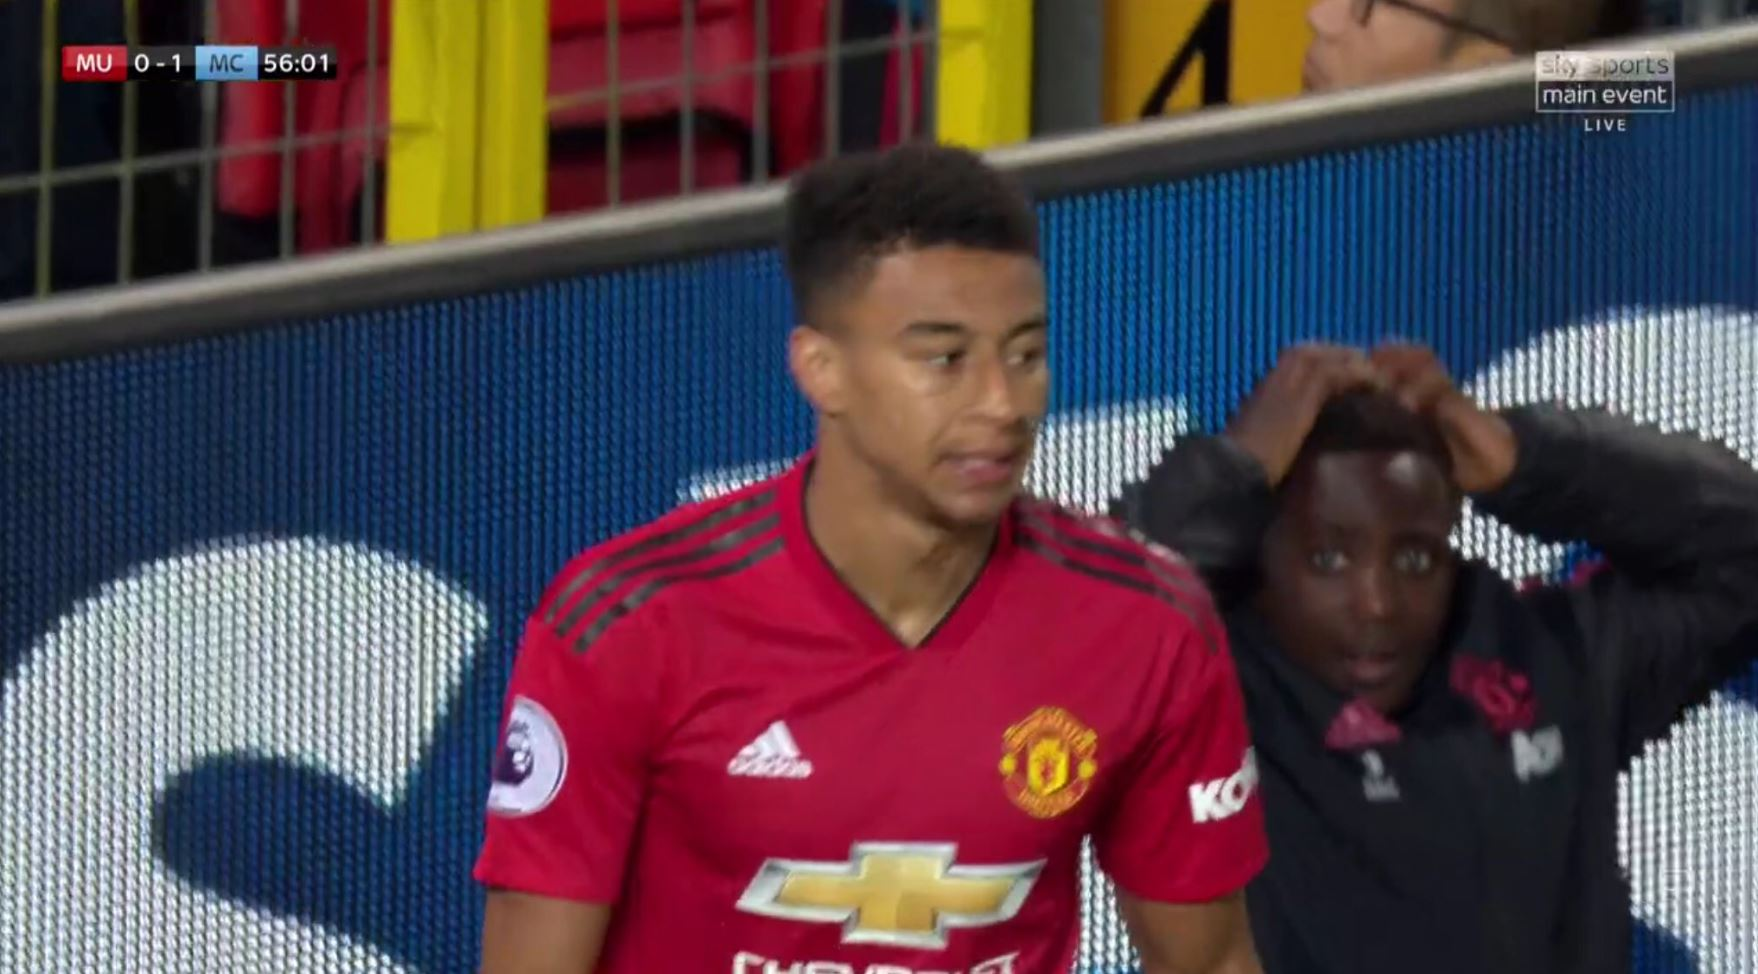 Manchester United's ball boy was shocked by Jesse Lingard's close-range miss against Manchester City